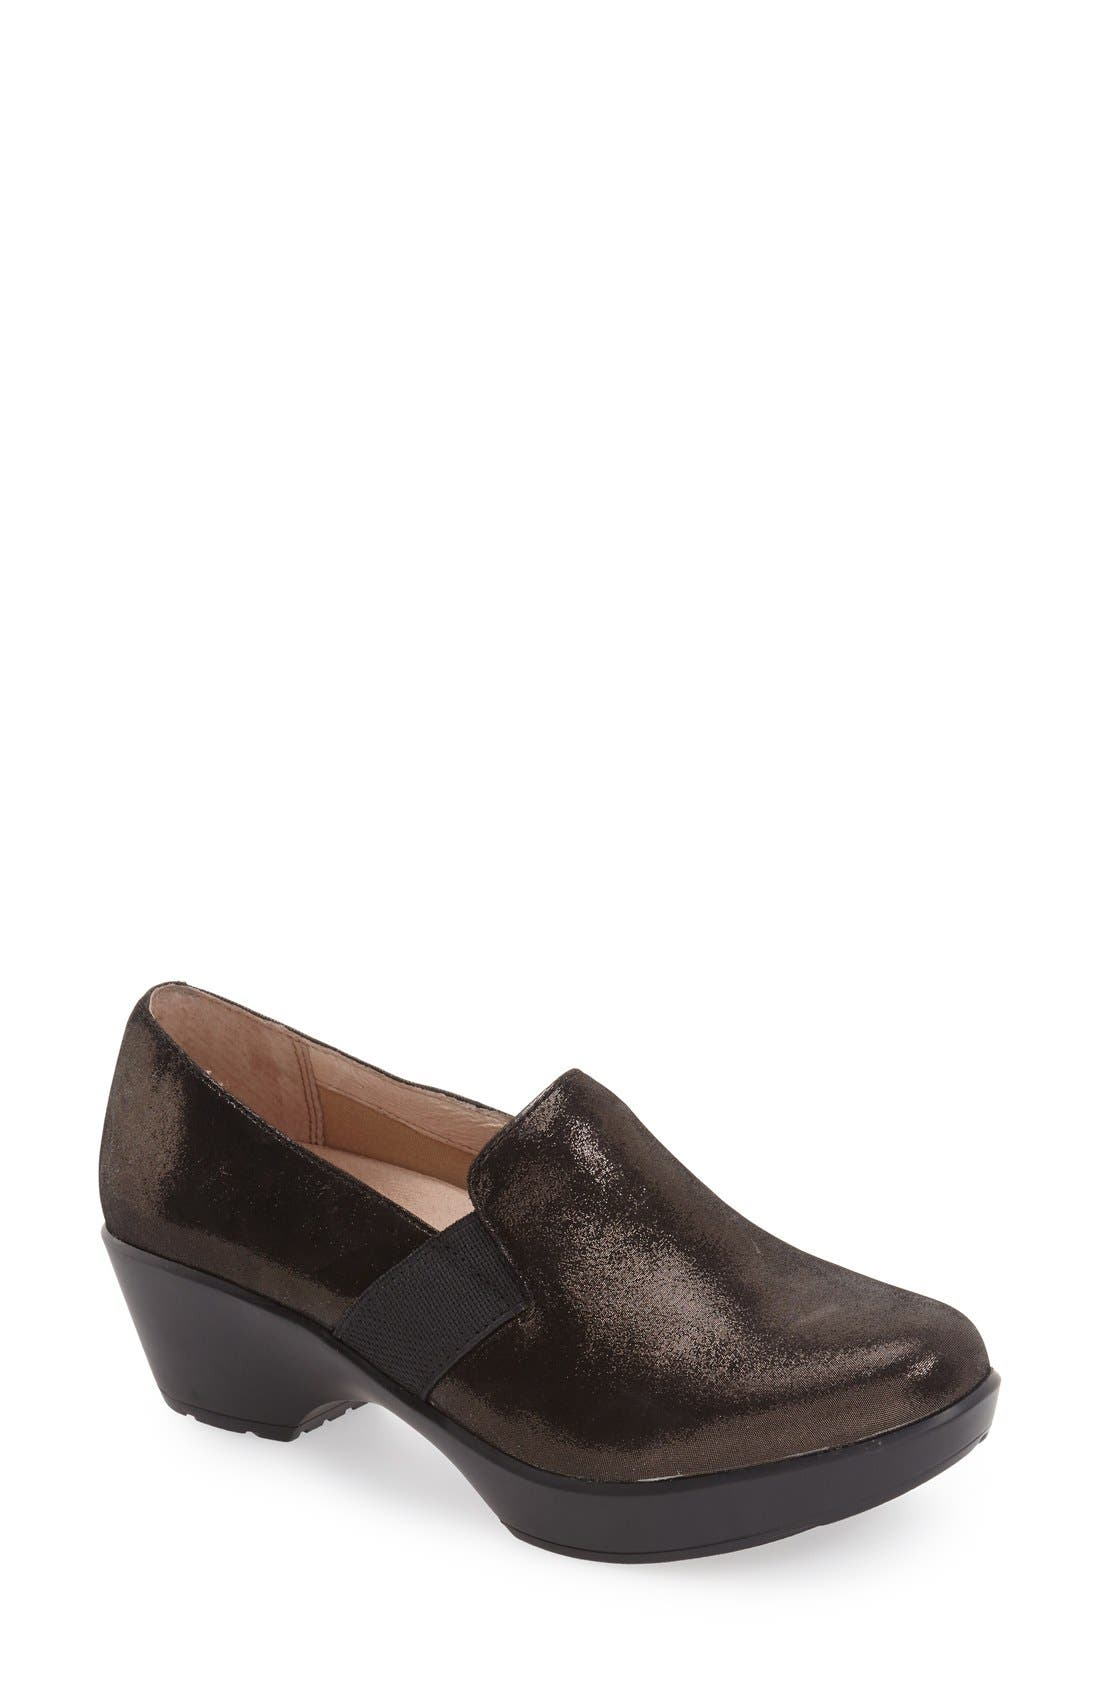 'Jessica' Platform Loafer,                             Main thumbnail 1, color,                             Black Metallic Suede